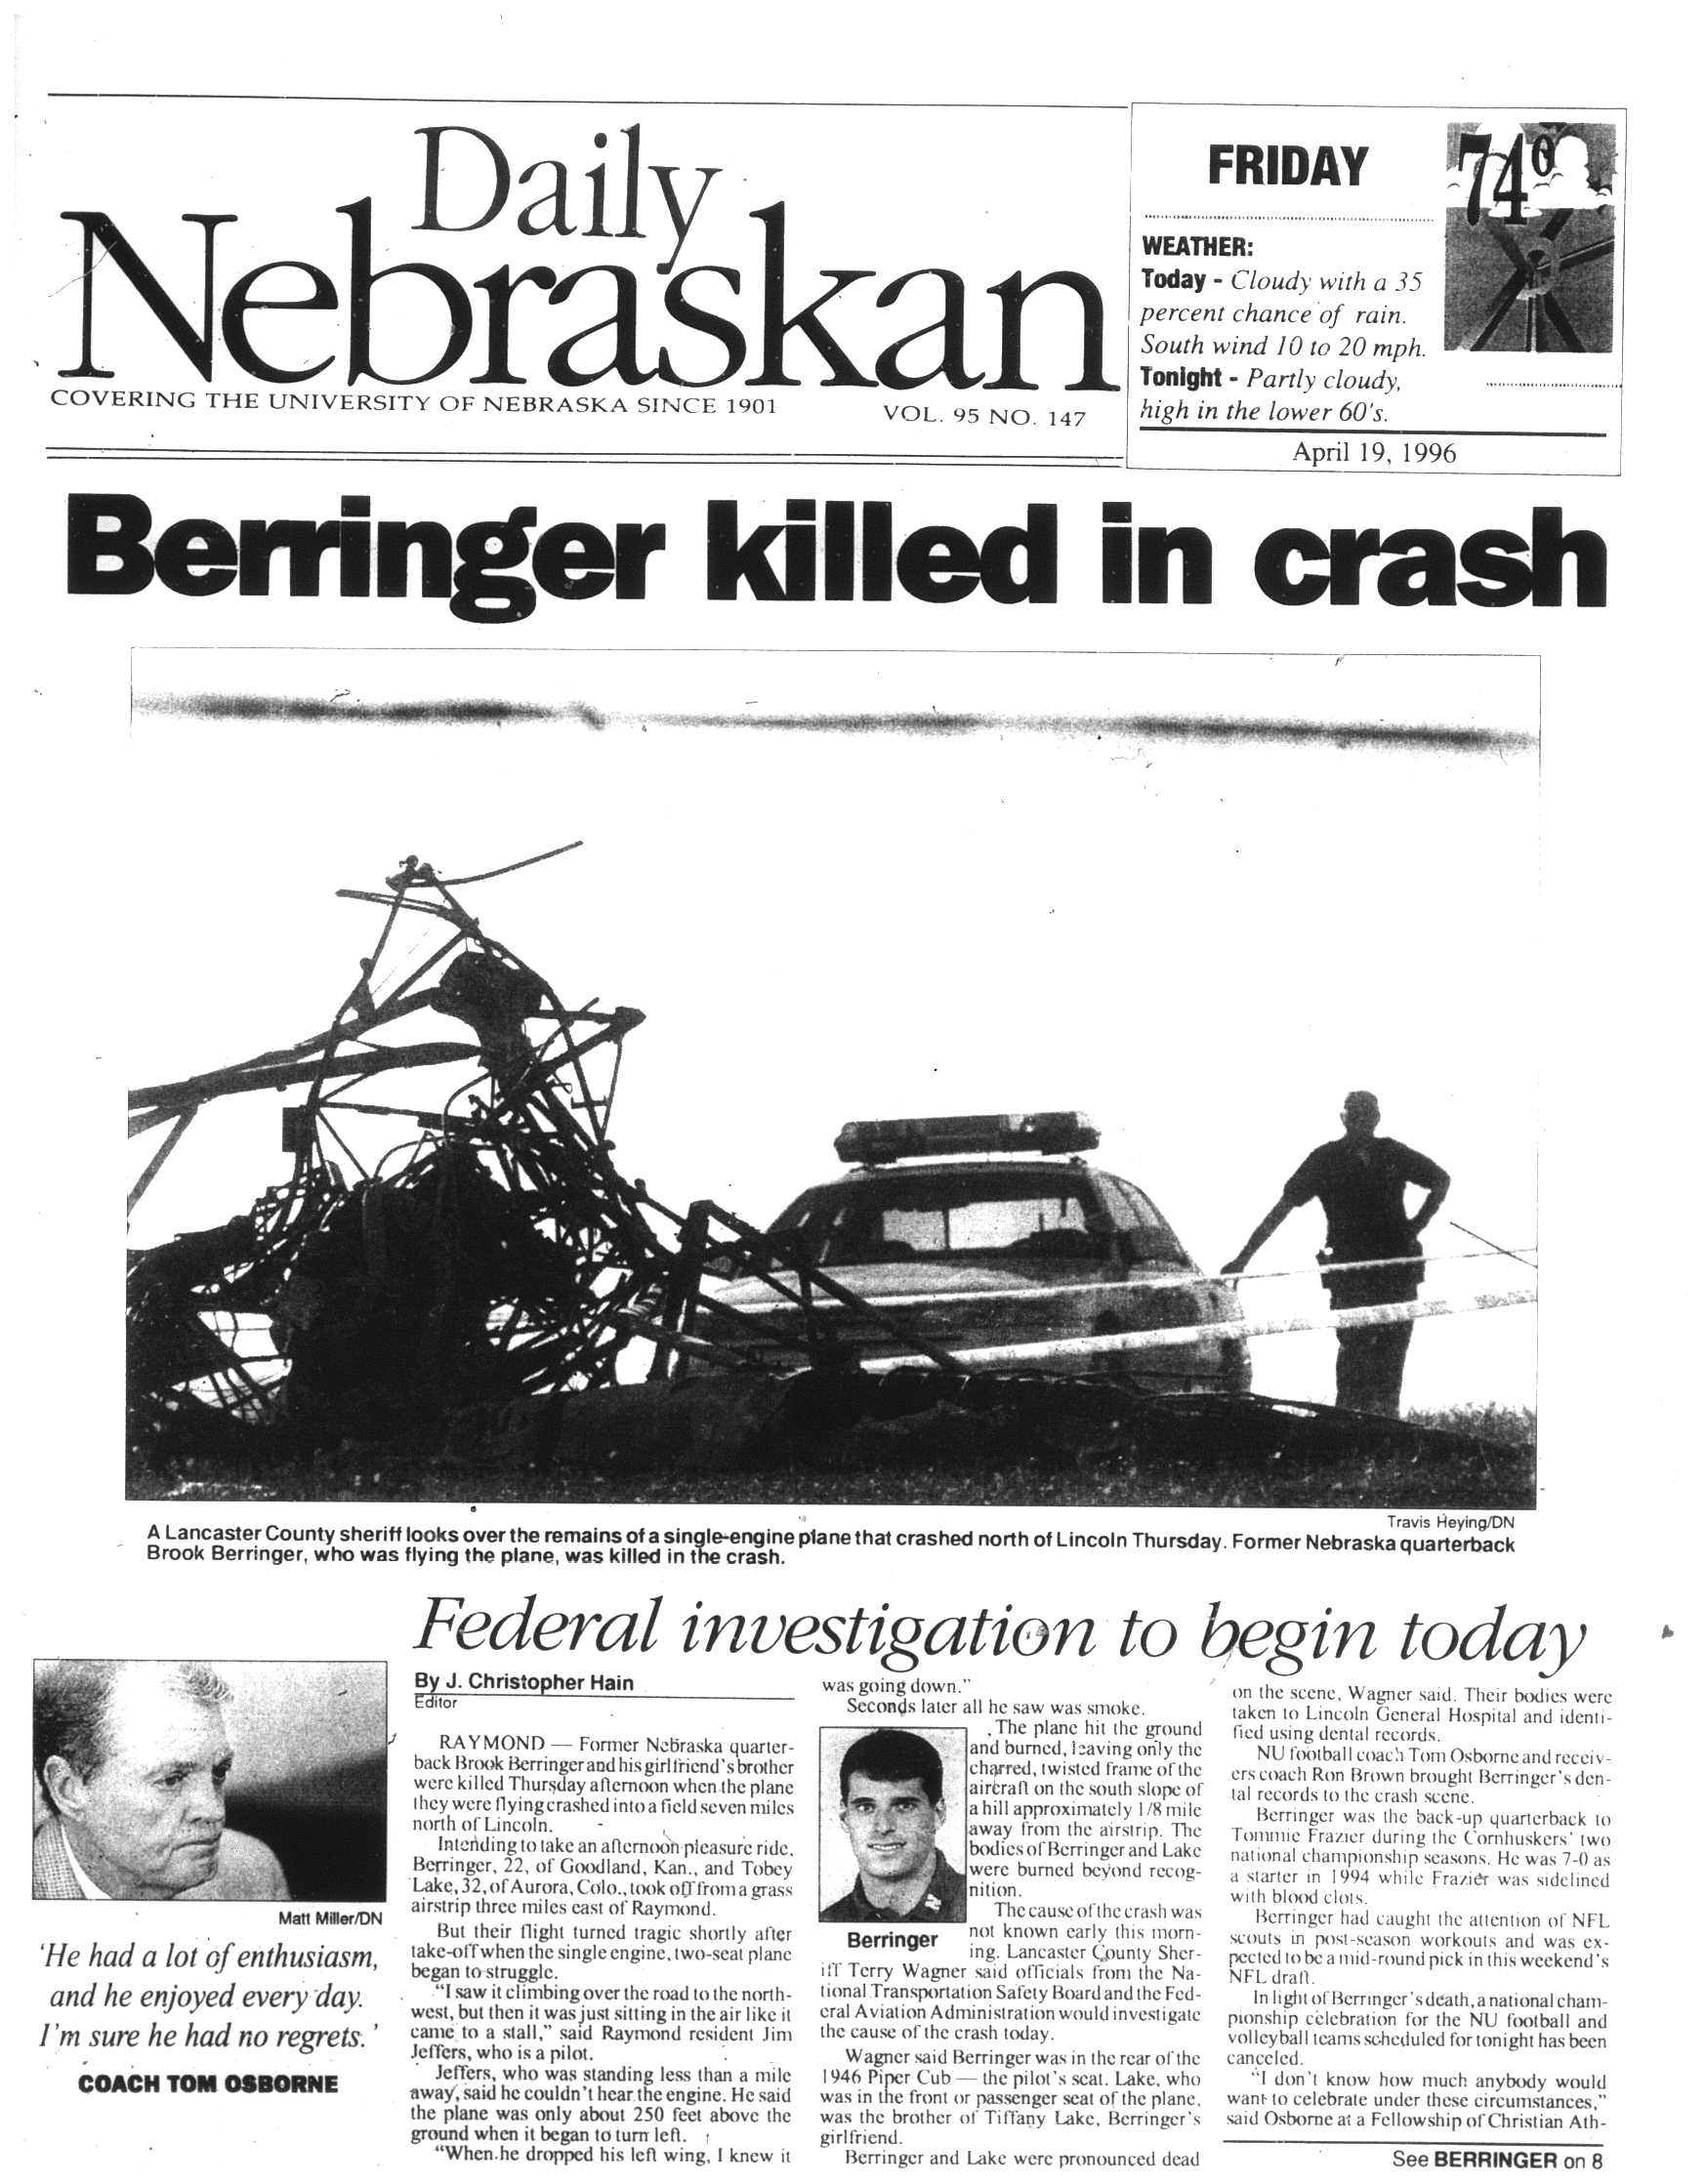 Daily Nebraskan: Berringer Killed in Crash